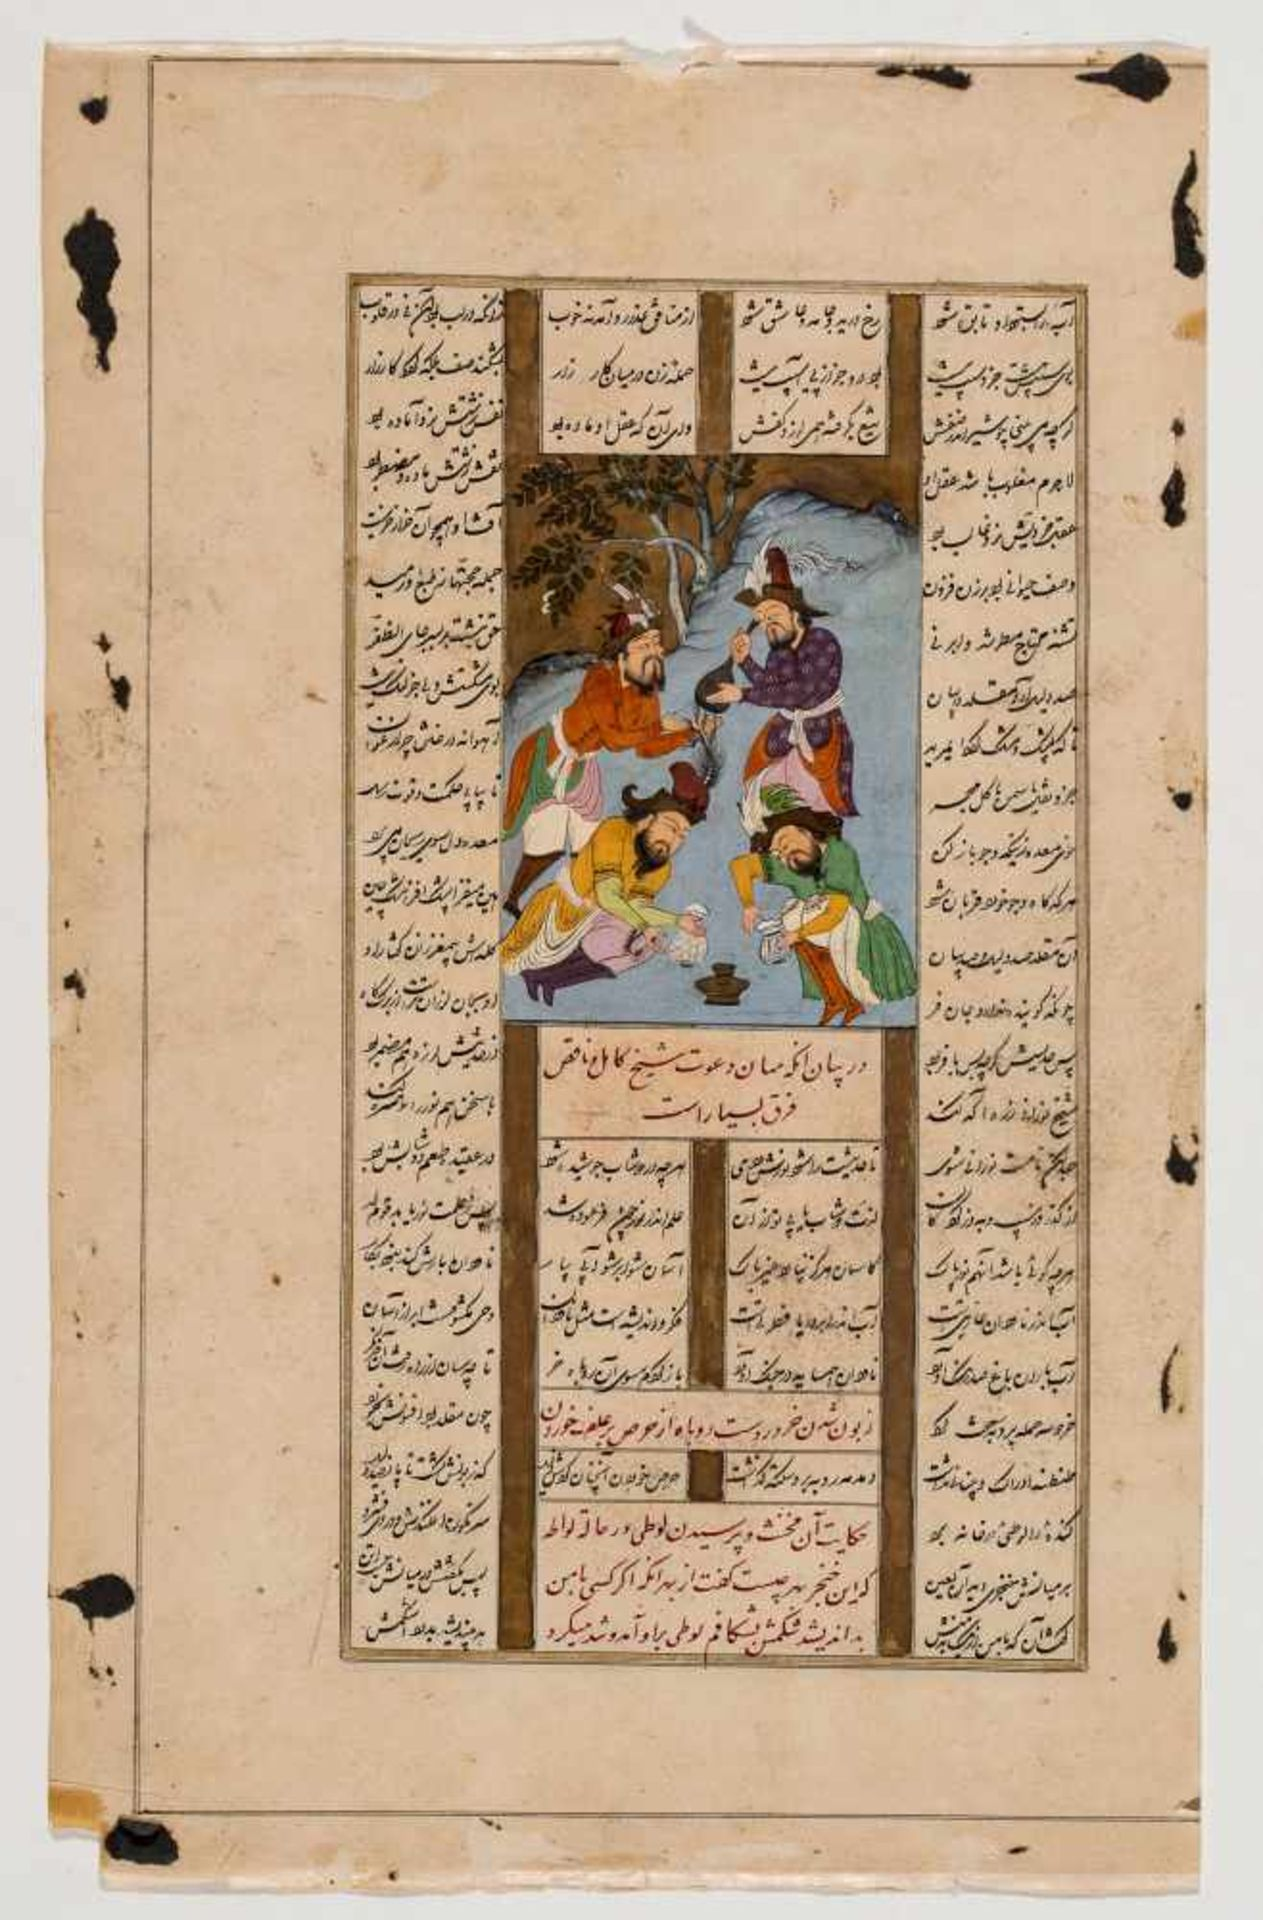 TWO INDO-PERSIAN MINIATURE PAINTINGS WITH CALLIGRAPHY - 19th CENTURYMiniature painting with colors - Image 4 of 5